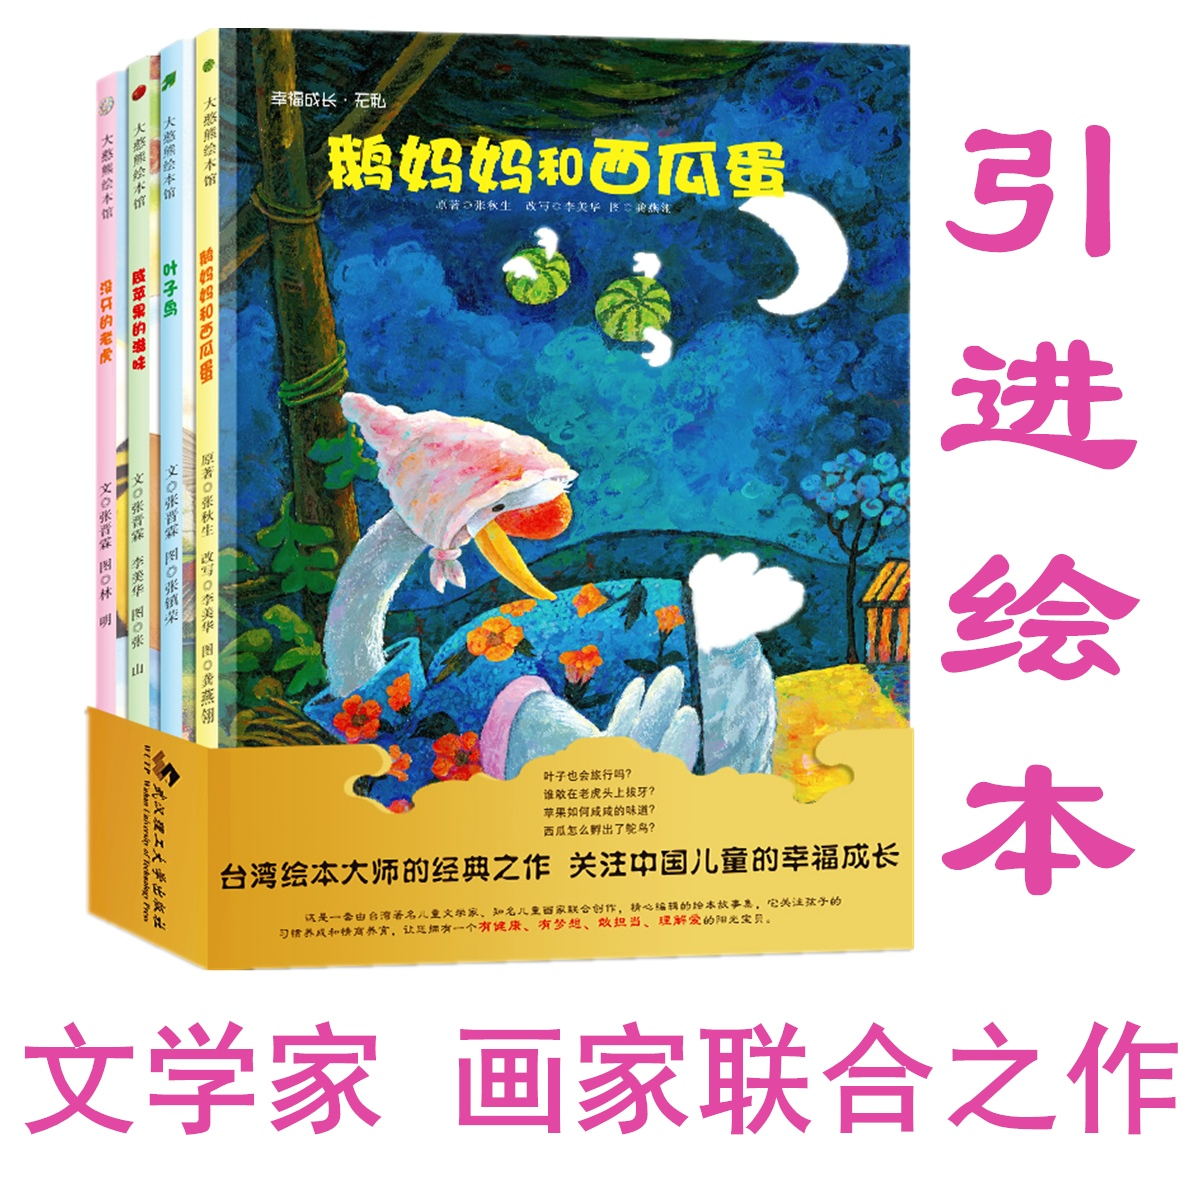 Genuine goose mother and watermelon egg picture book storybook classic  parent-child good habits fairy tale low kindergarten reading children's  books